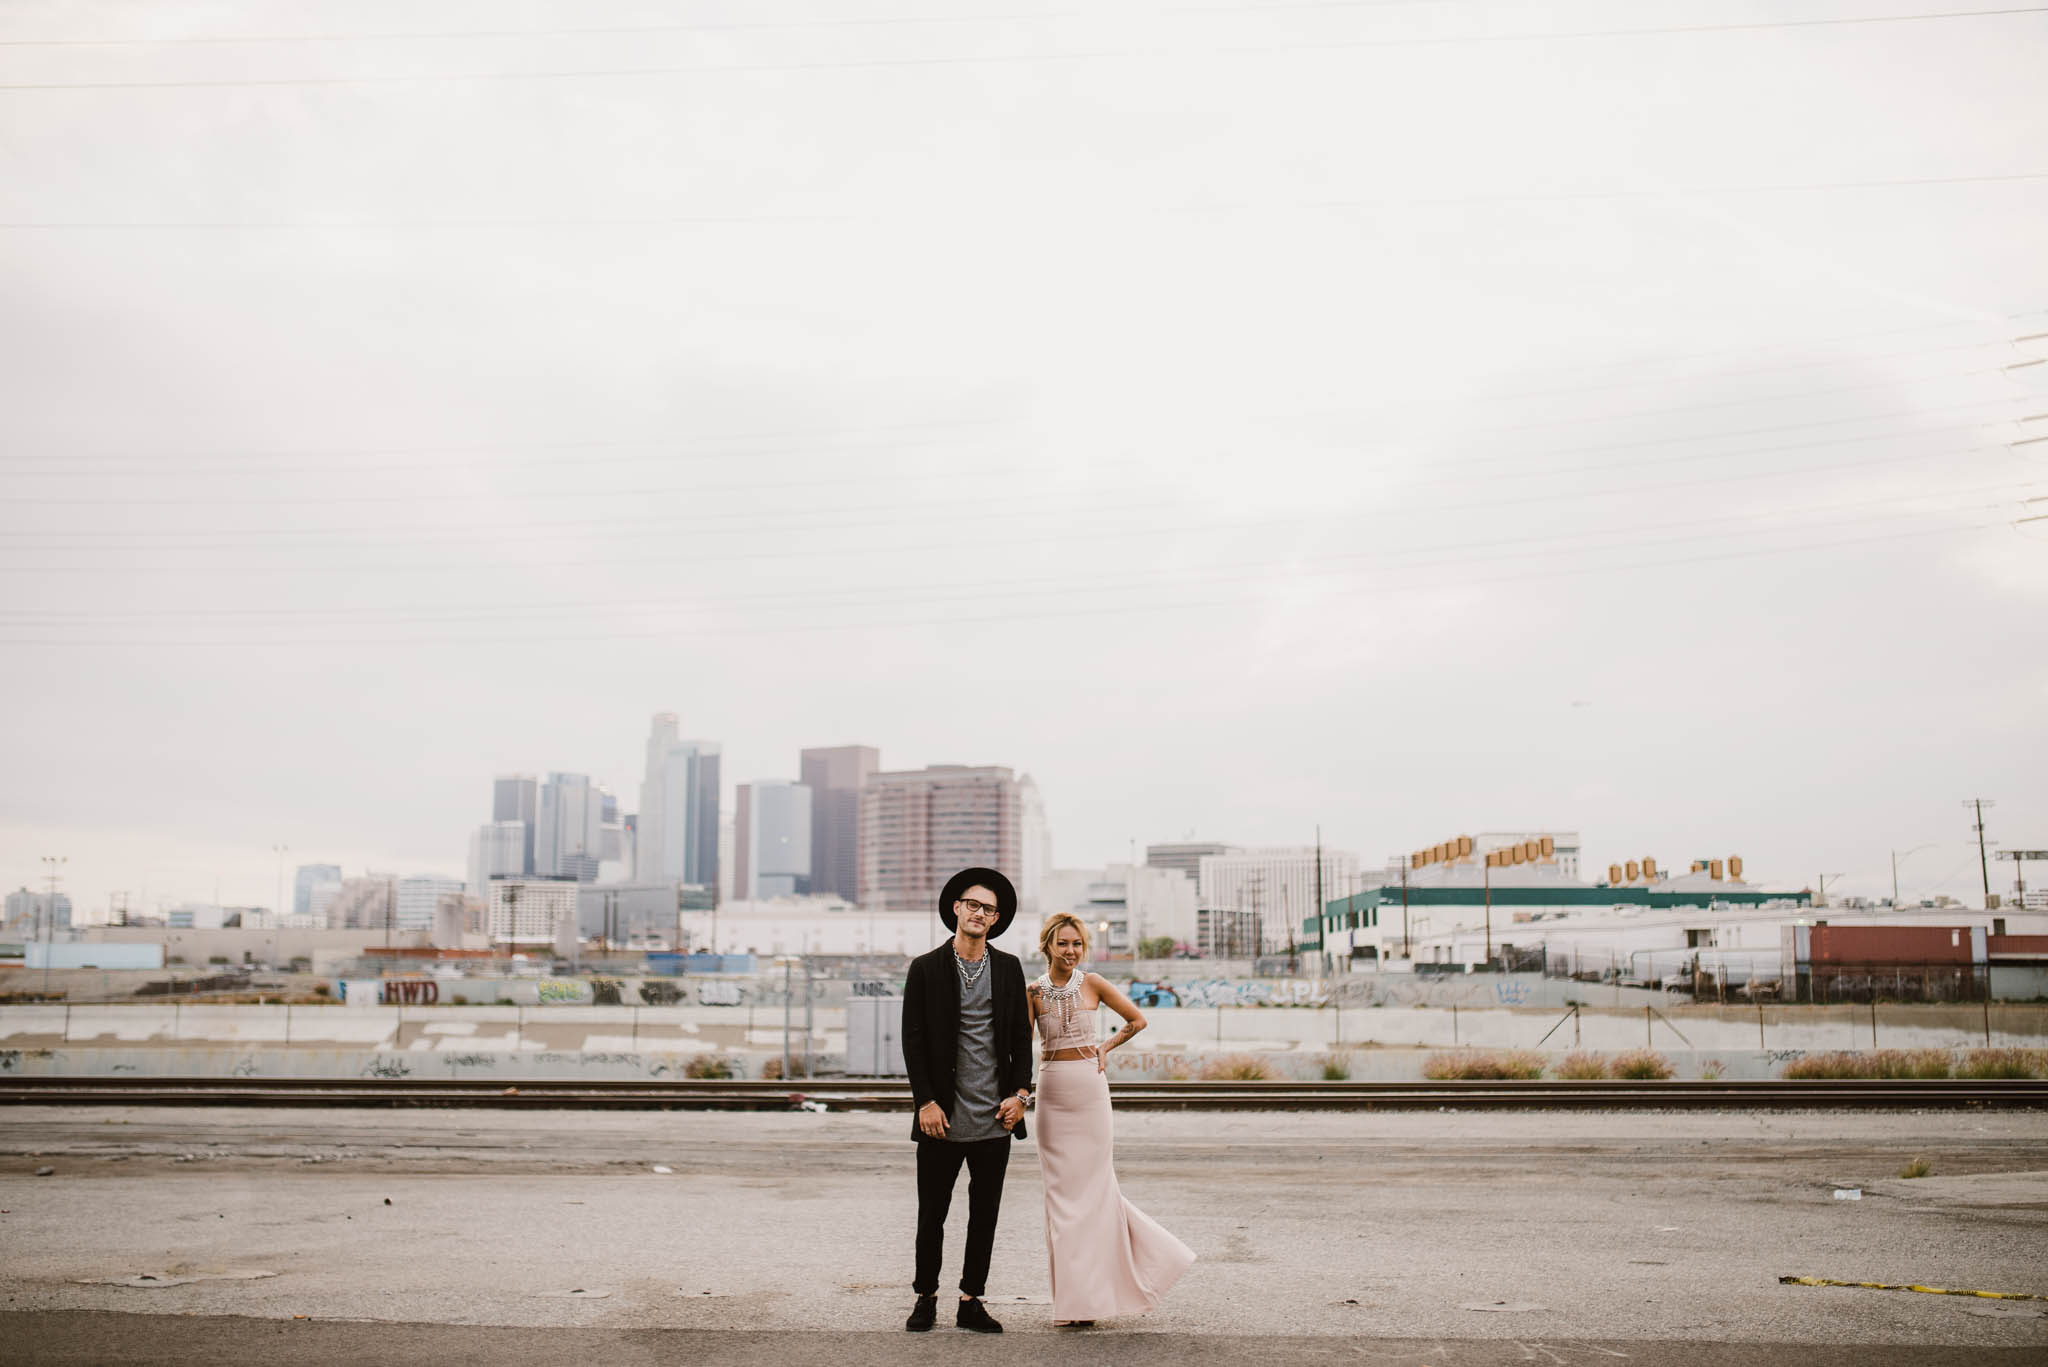 ©Isaiah-&-Taylor-Photography---Downtown-Los-Angeles-Skyline-Engagement-023.jpg